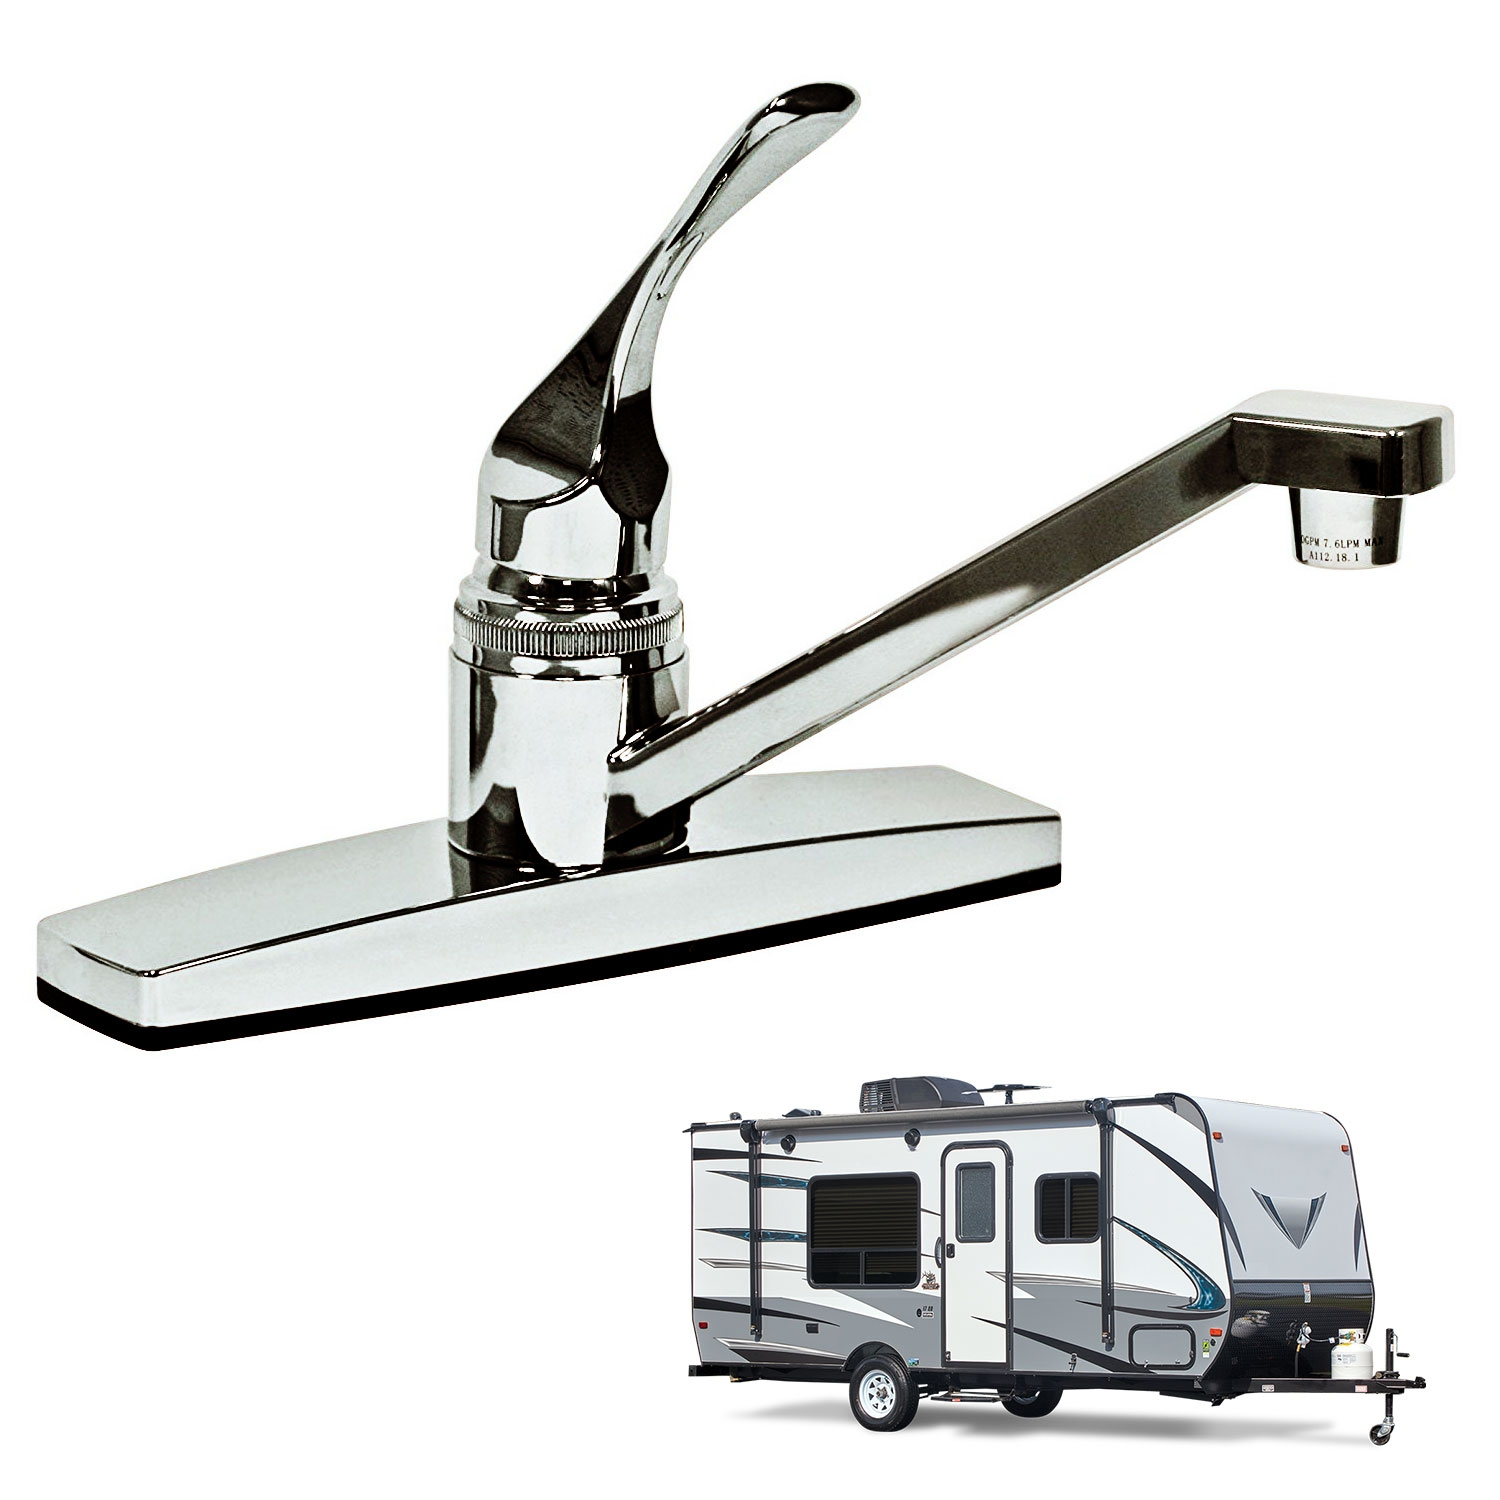 single lever handle rv kitchen faucet non metallic polished chrome finish for mobile homes motorhomes travel trailers campers walmart com